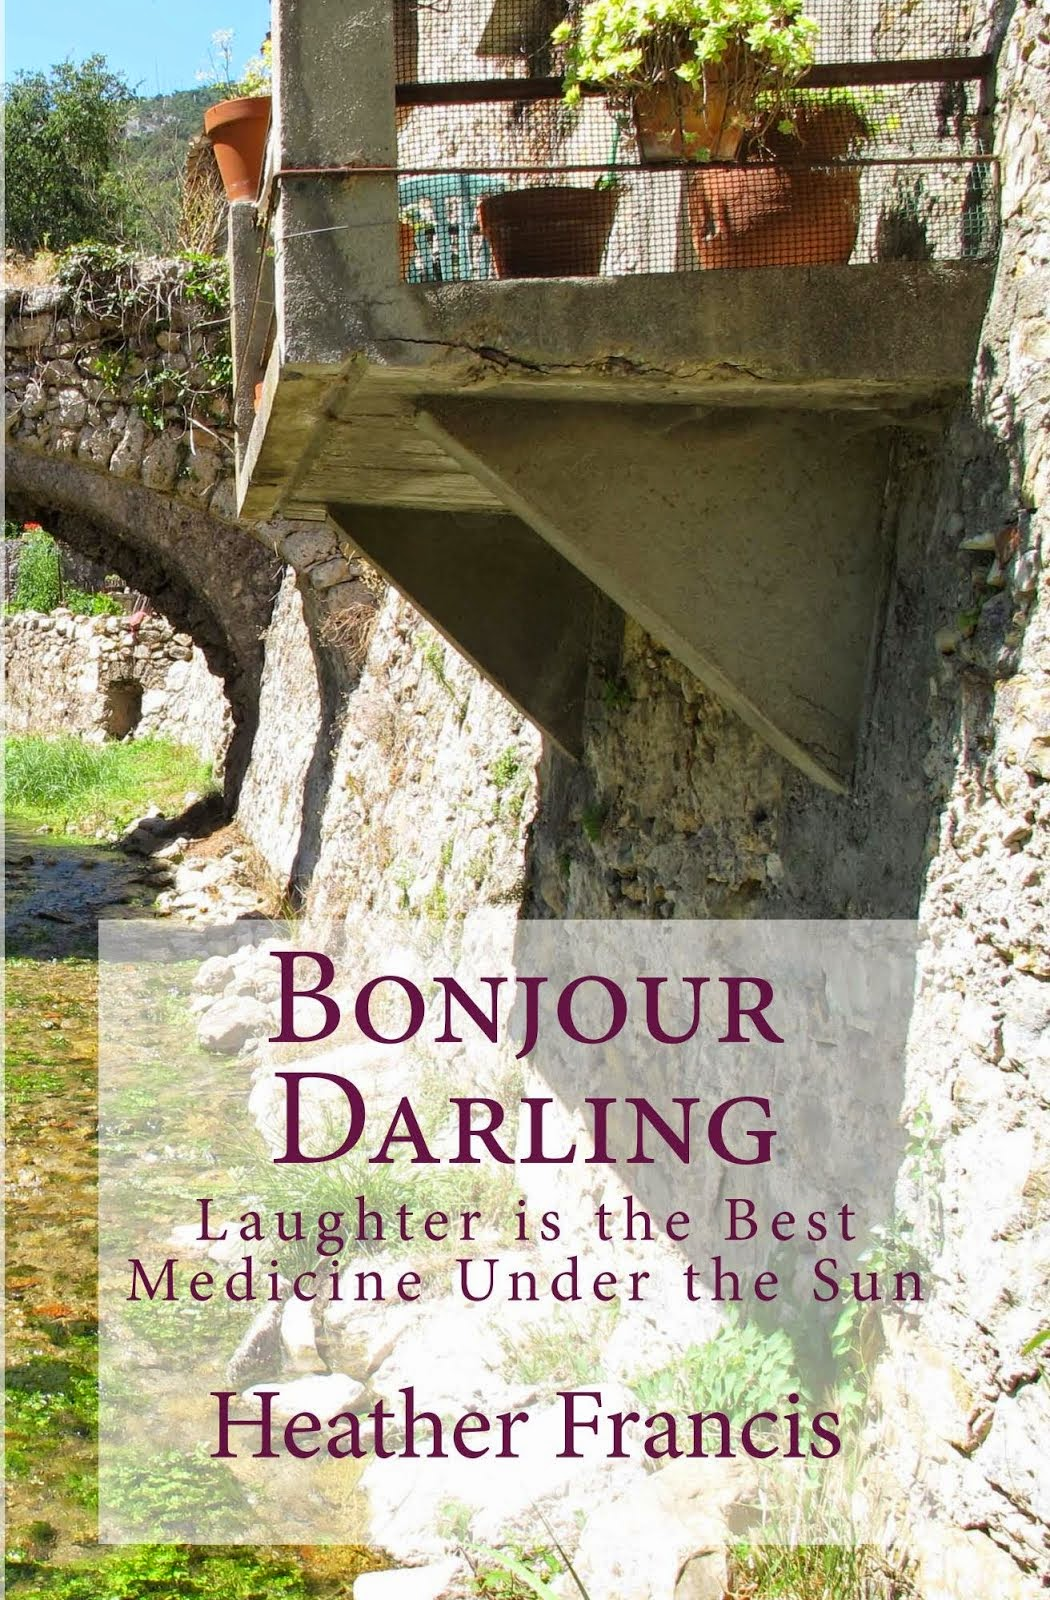 Bonjour Darling by Heather Francis